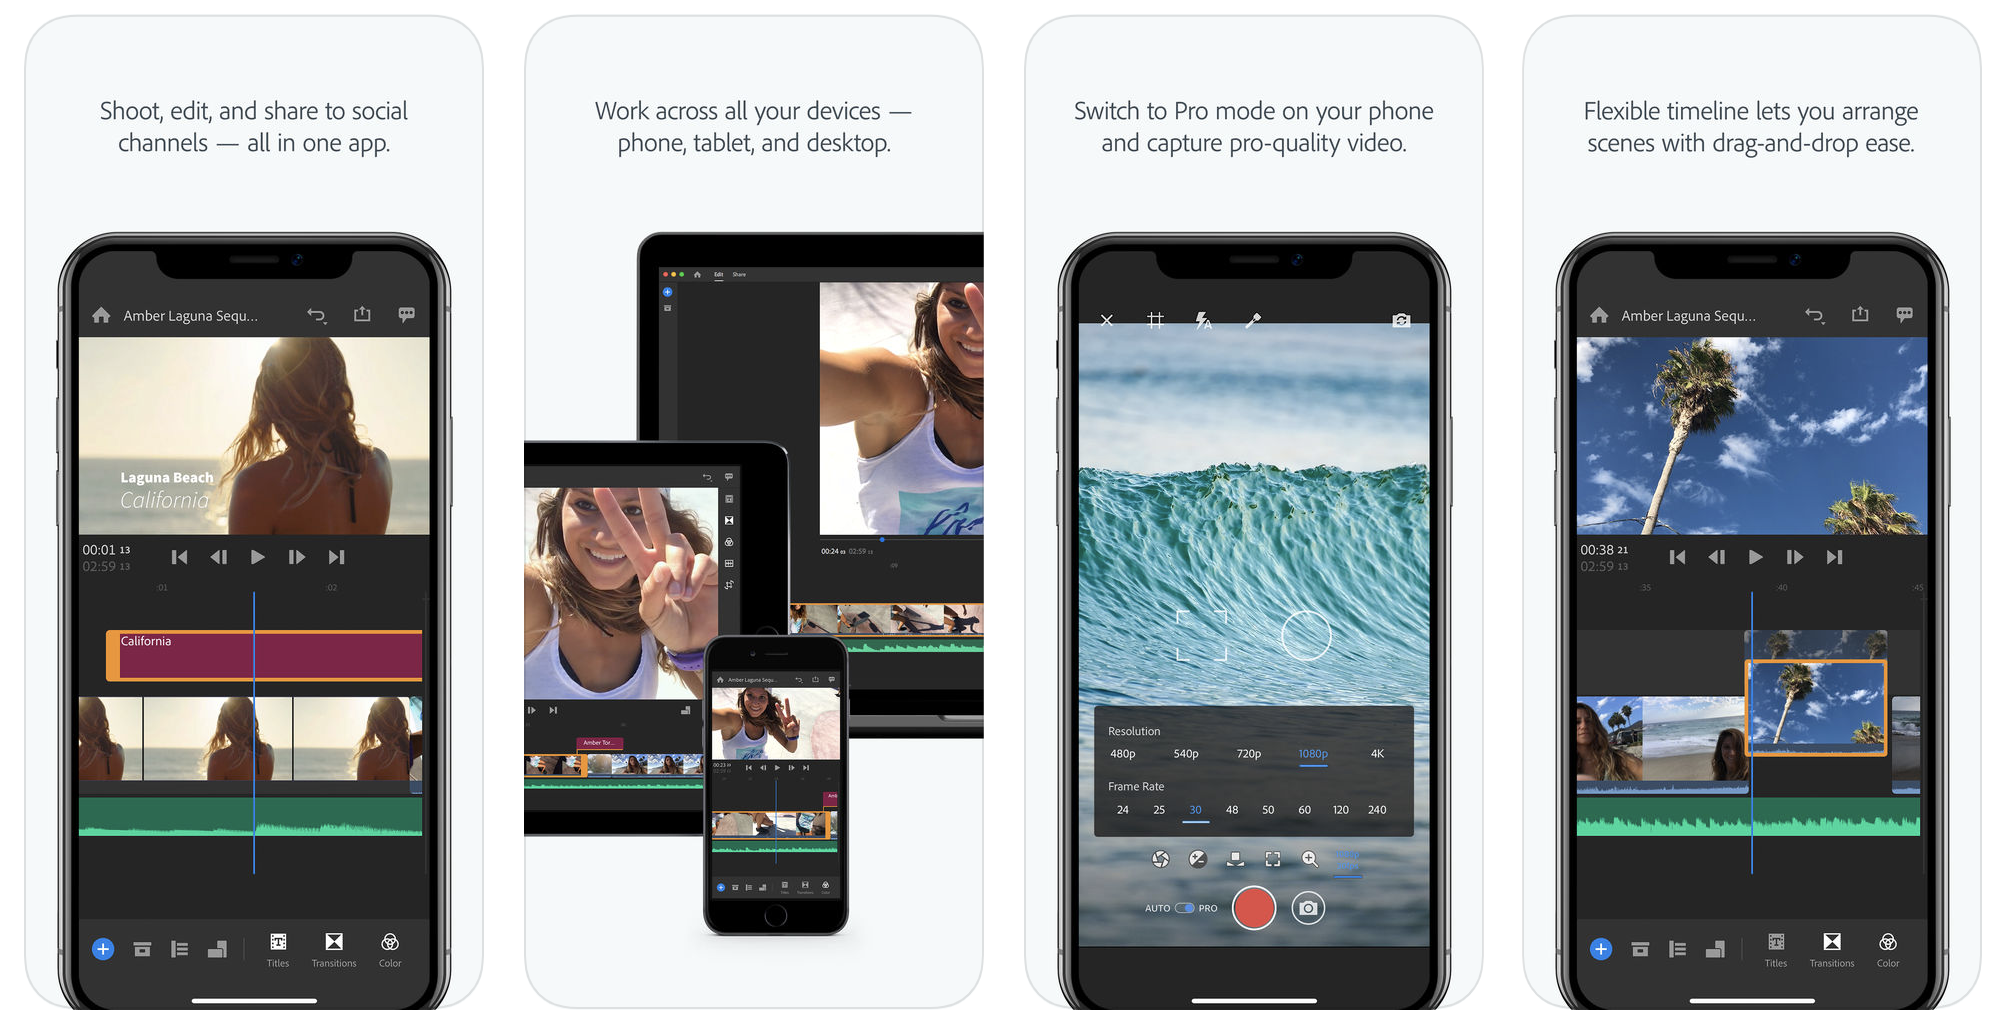 Best Video Editing Apps for iPhone 2019 - FilterGrade